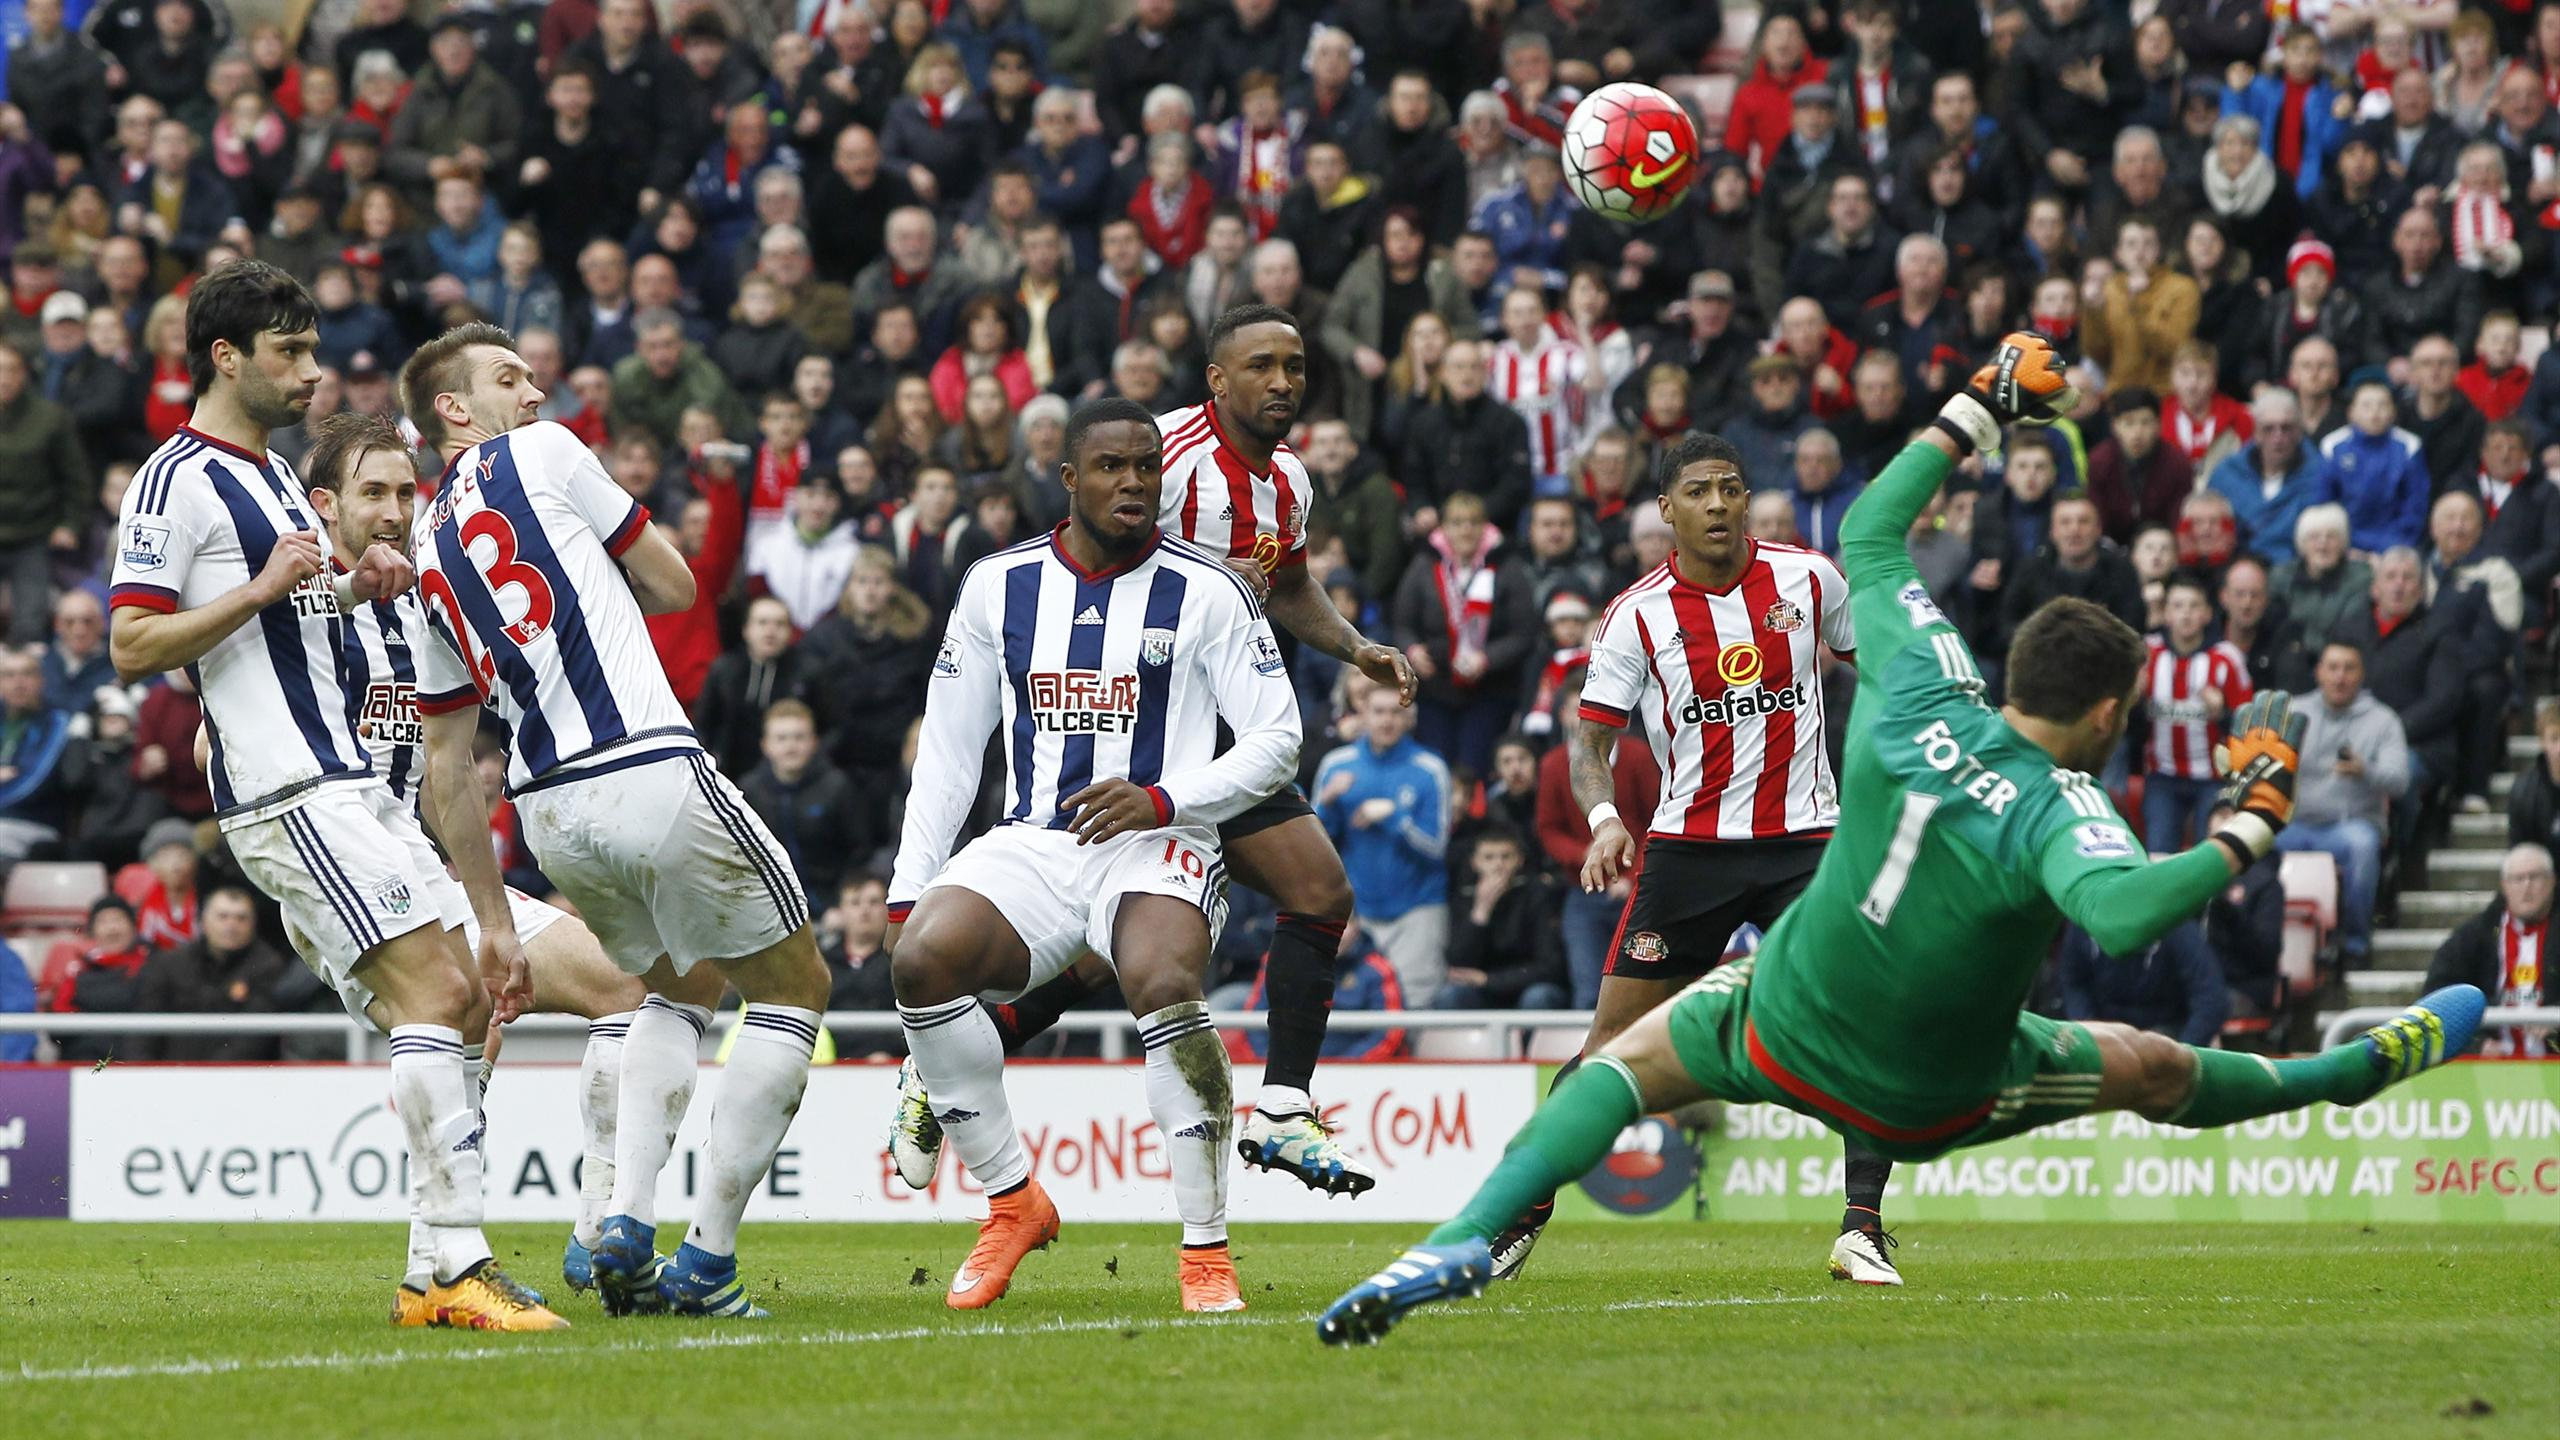 Sunderland's Jermain Defoe has a shot saved by West Brom's Ben Foster